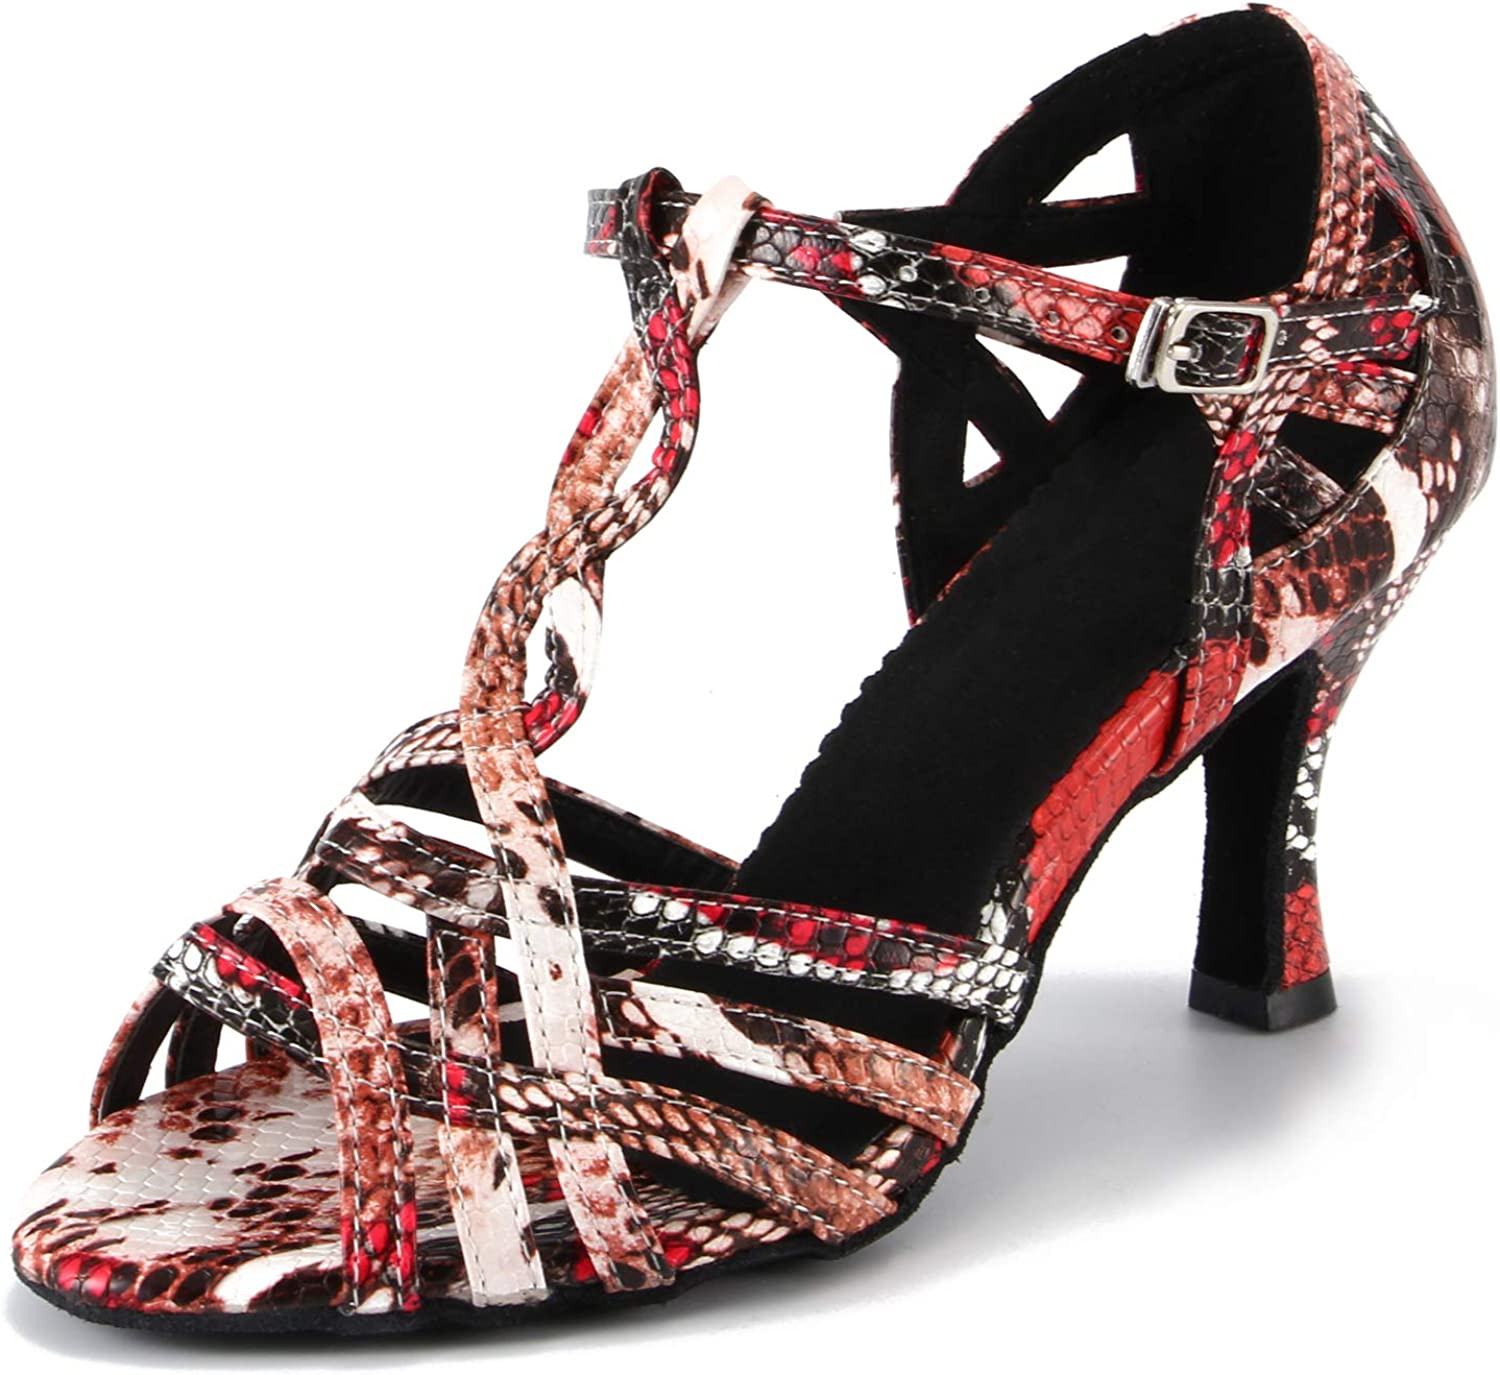 LOVELY BEAUTY Lady's Ballroom Dance Shoes for Chacha Latin Salsa Rumba Practice